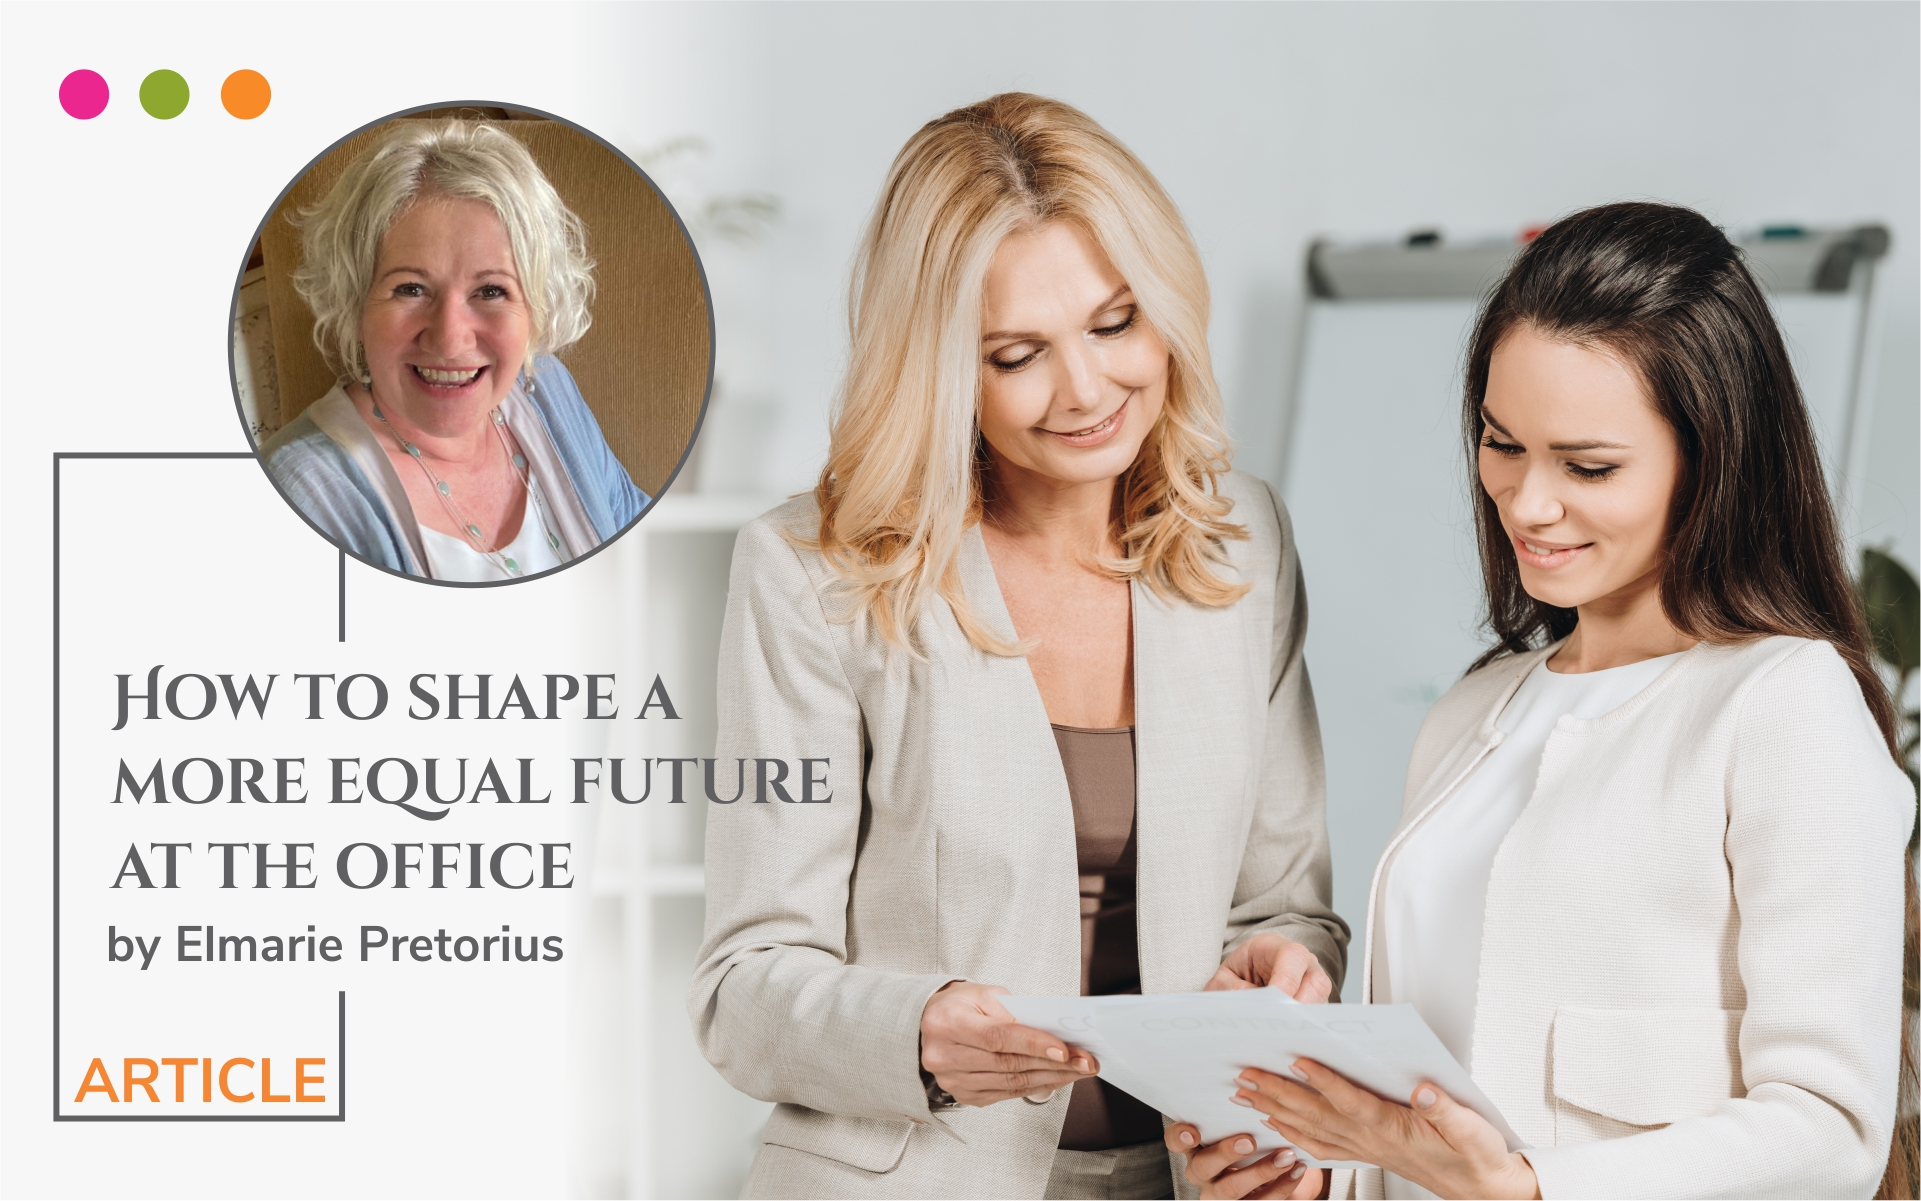 How to shape a more equal future at the office article image